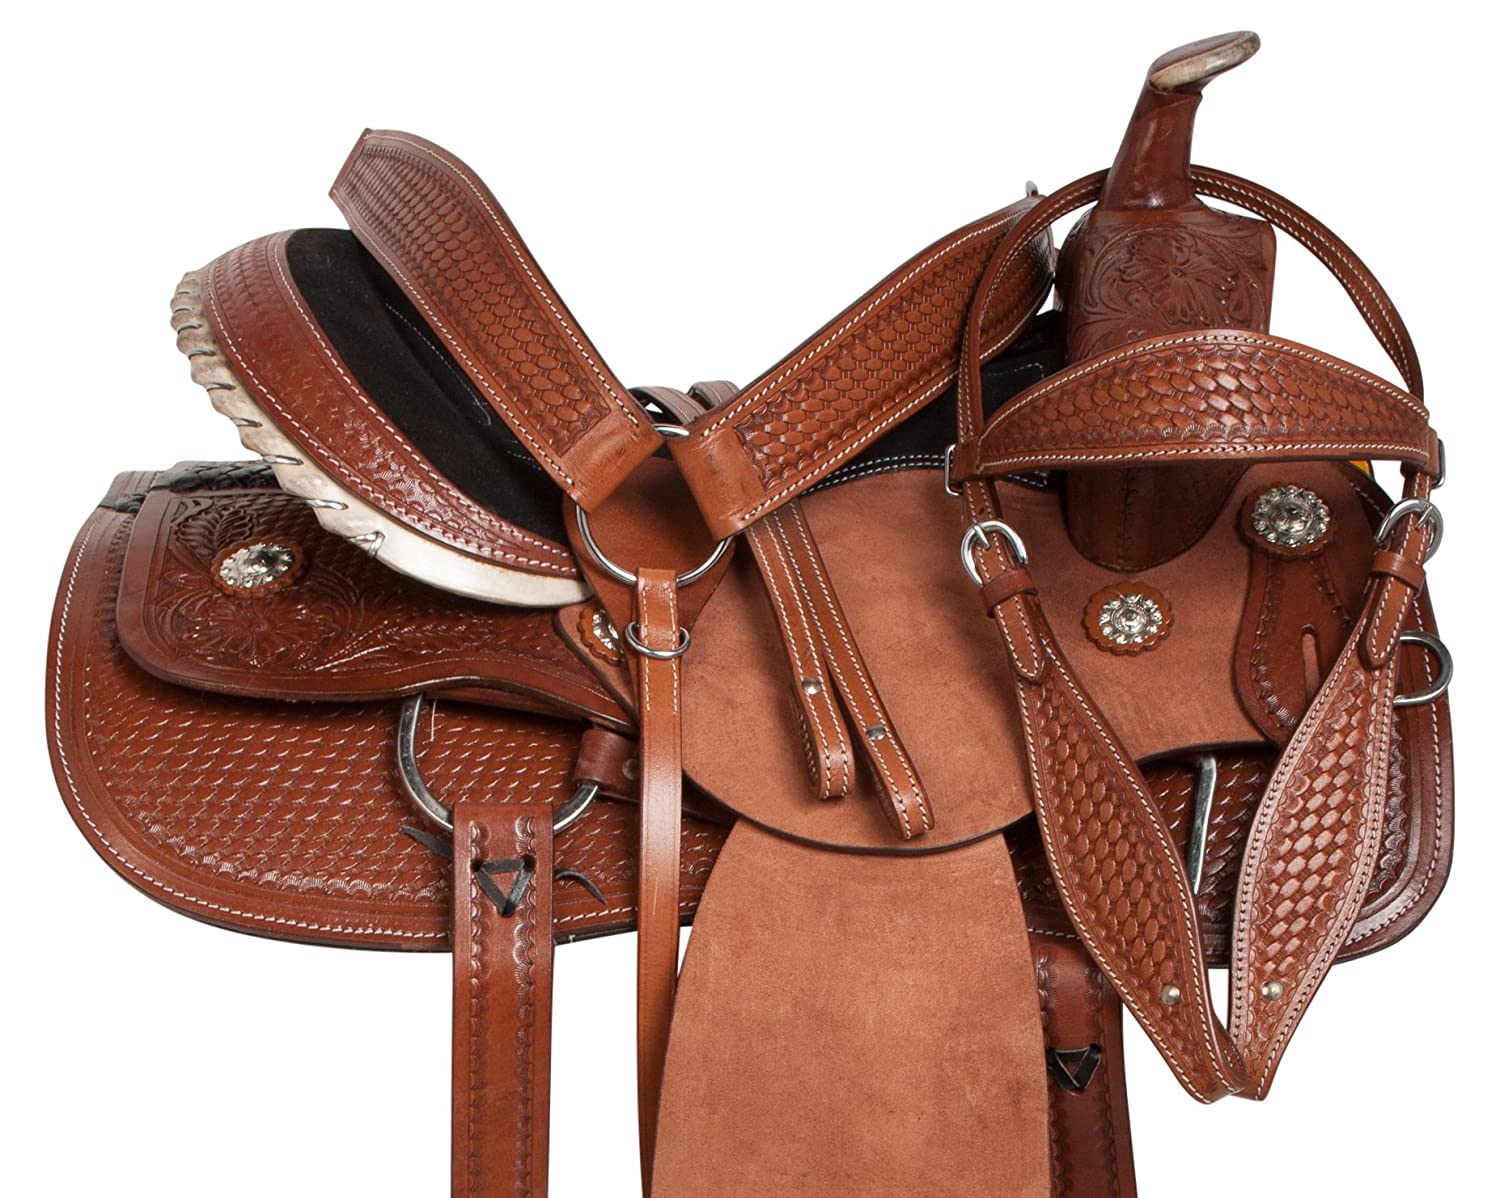 acerugs 15 16 17 18 Rough Out Western Leather Barrel Racer Pleasure Trailカウボーイ馬サドルTackパッケージ 16  B07DD12JNQ